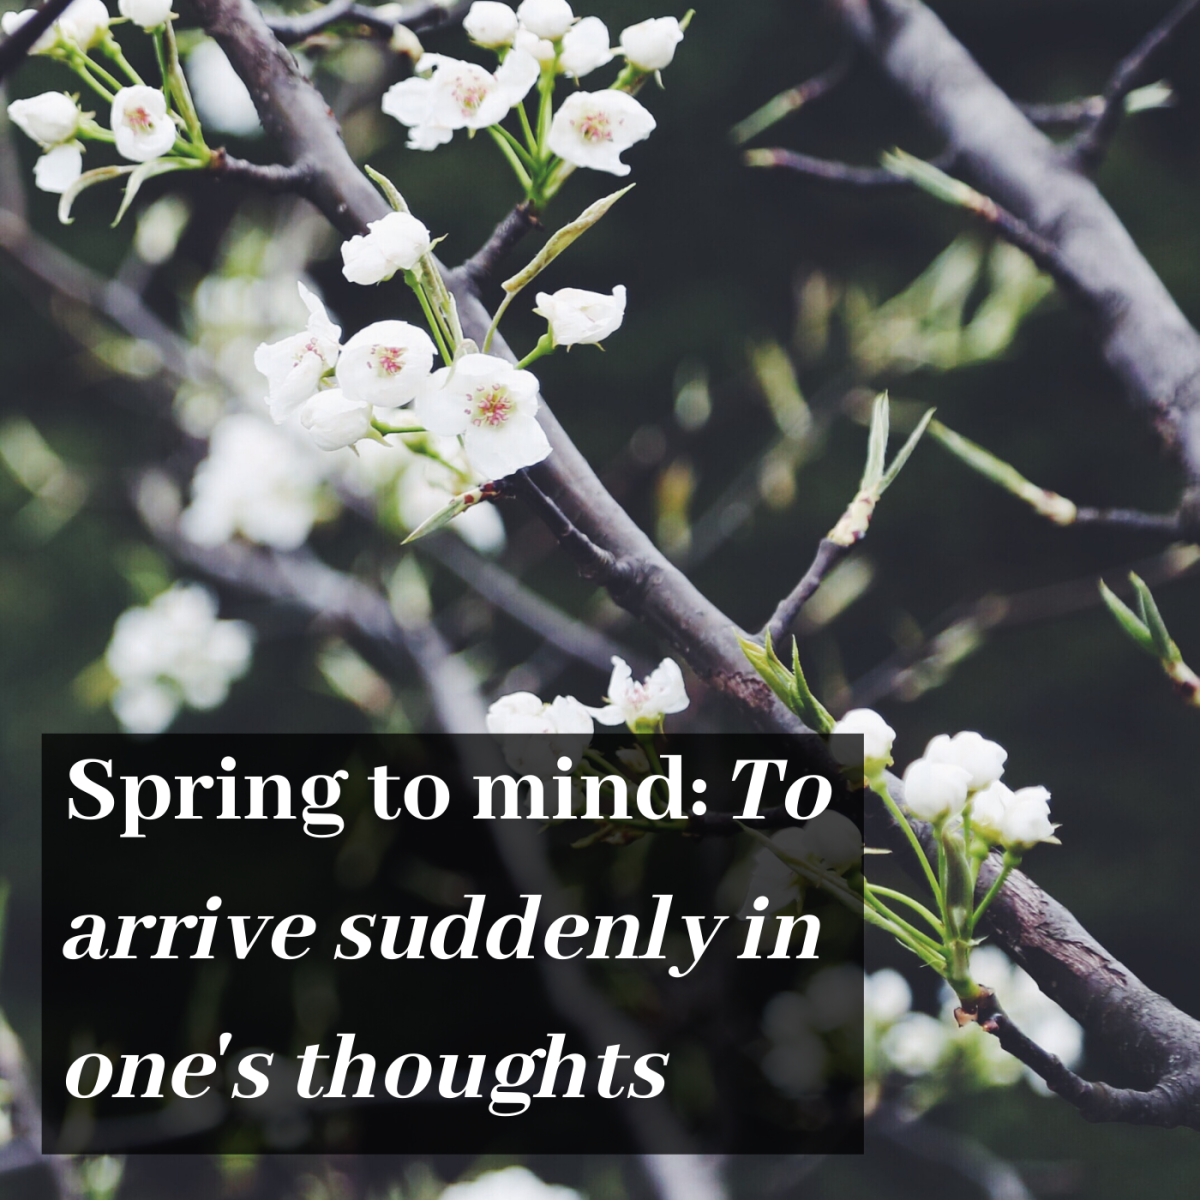 Spring to mind: To arrive suddenly in one's thoughts